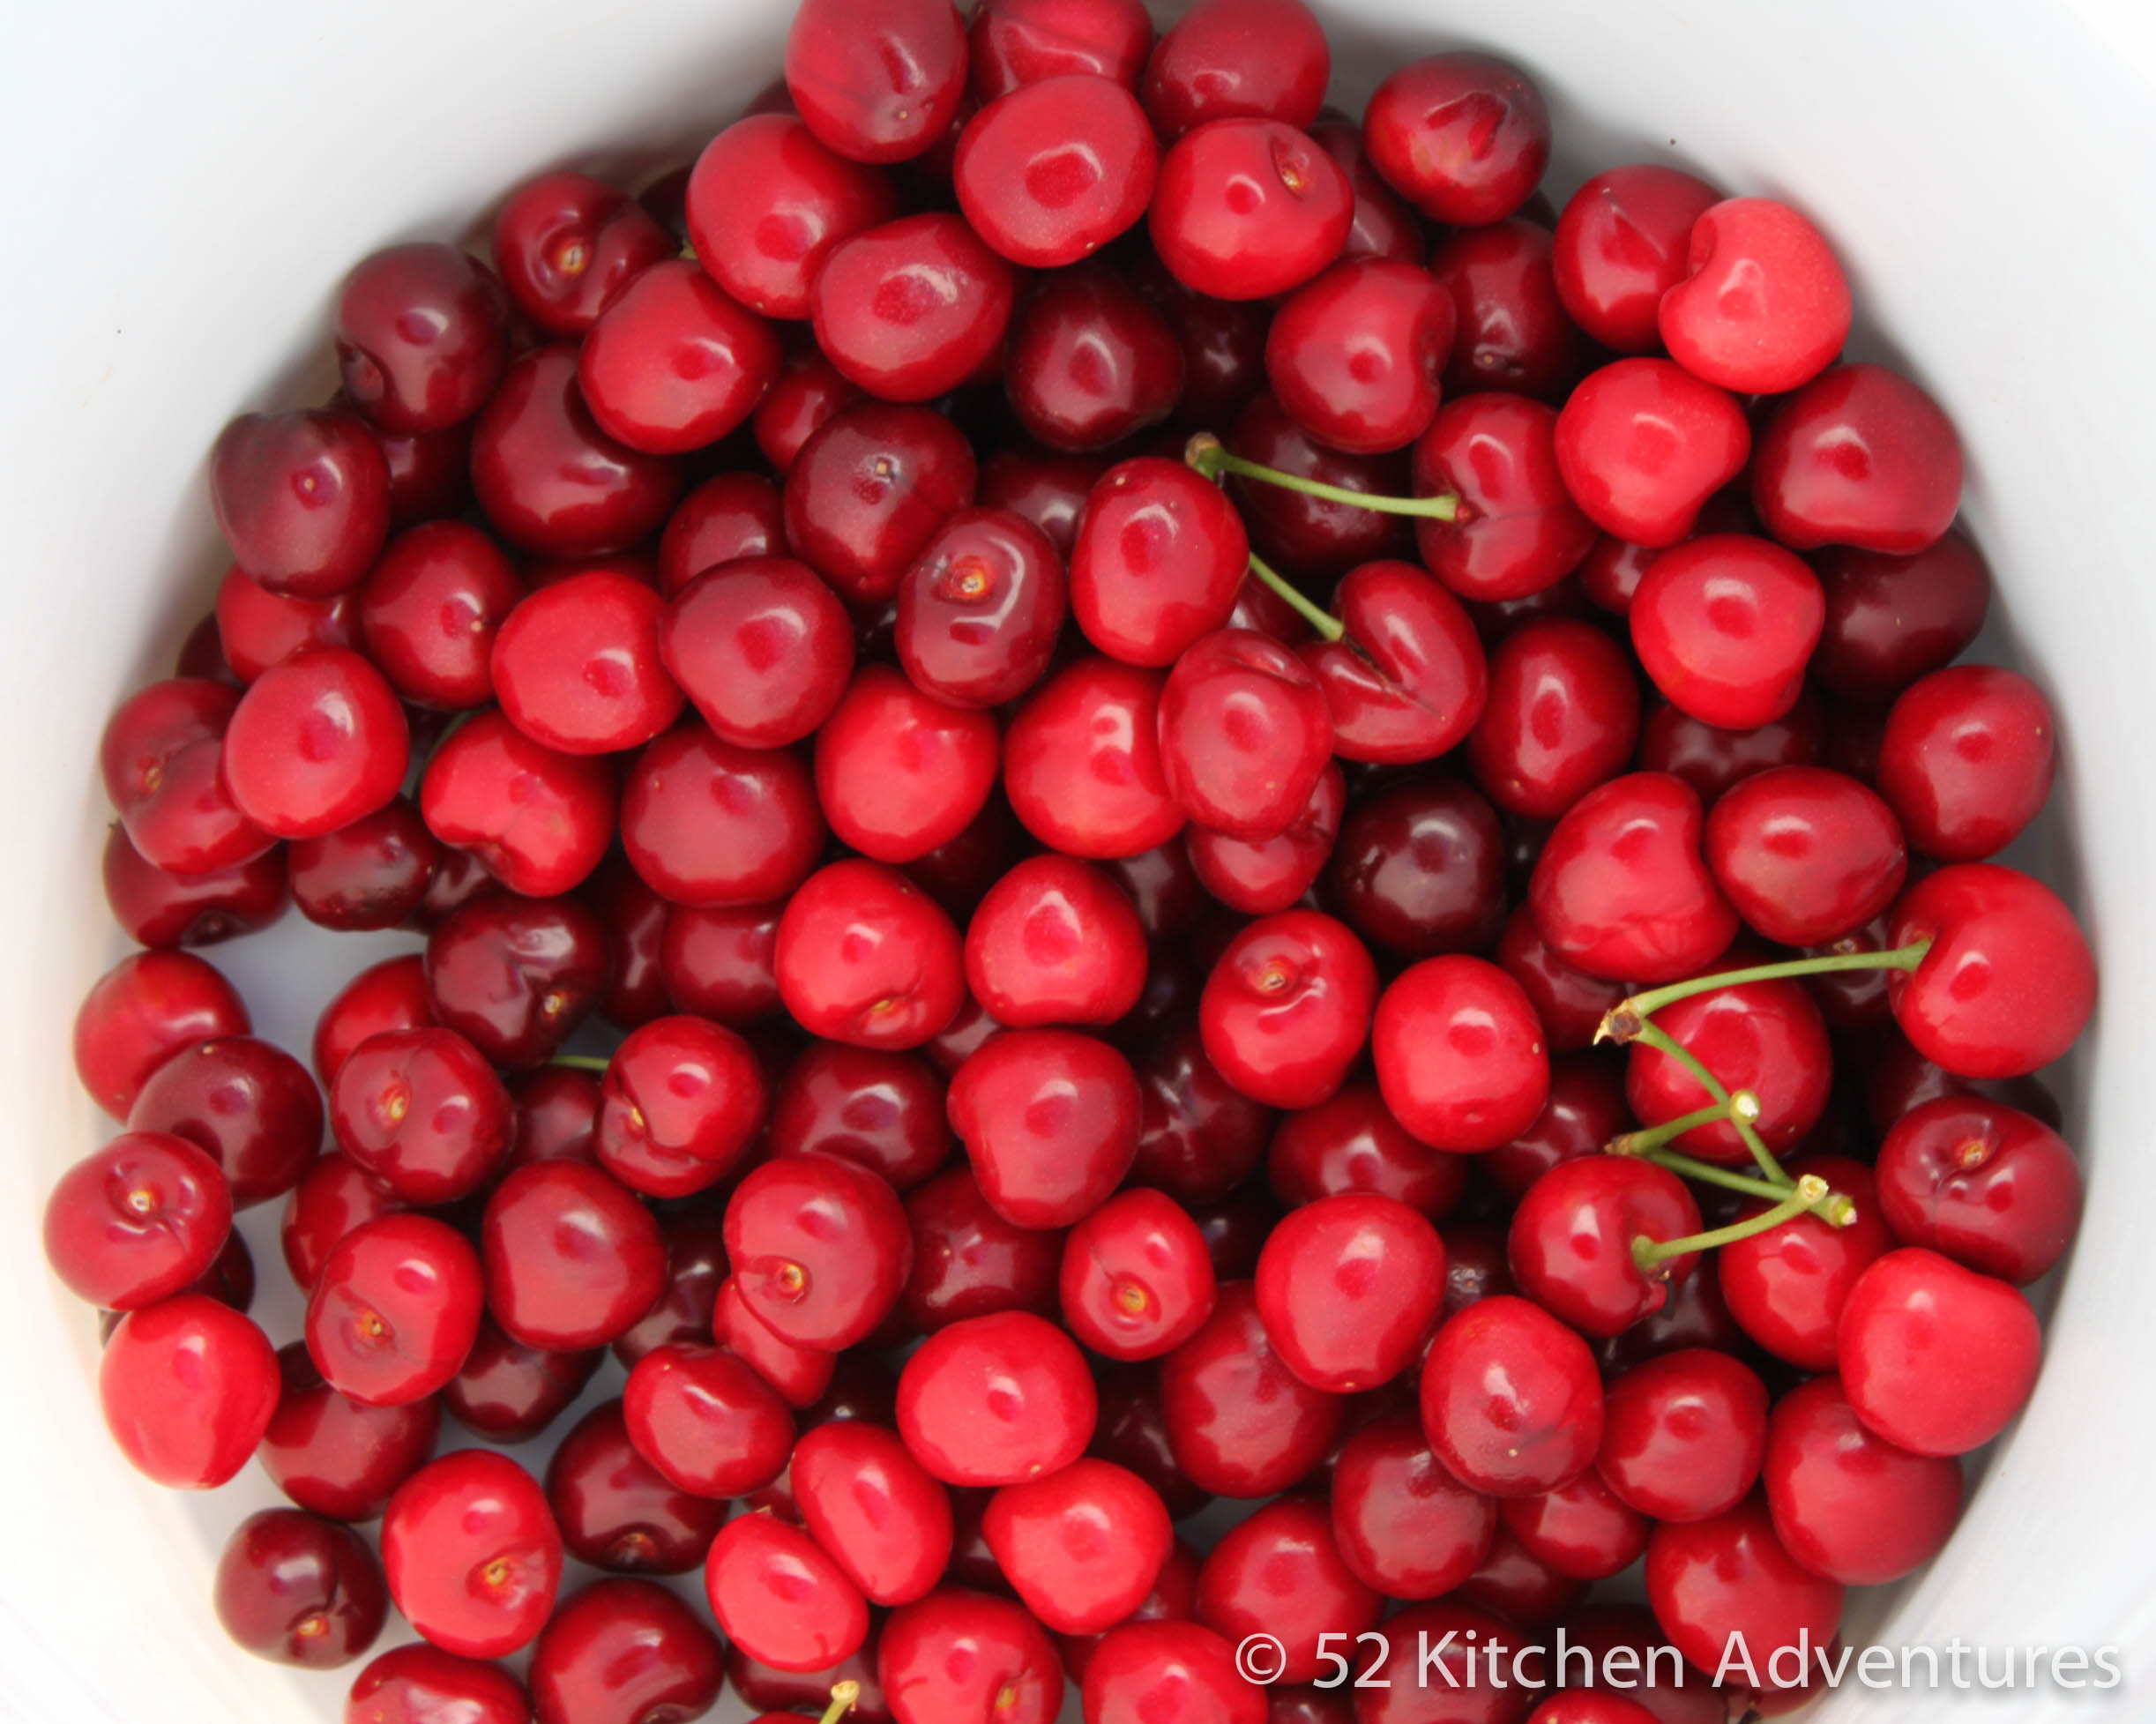 Salvador Family Farm Cherries